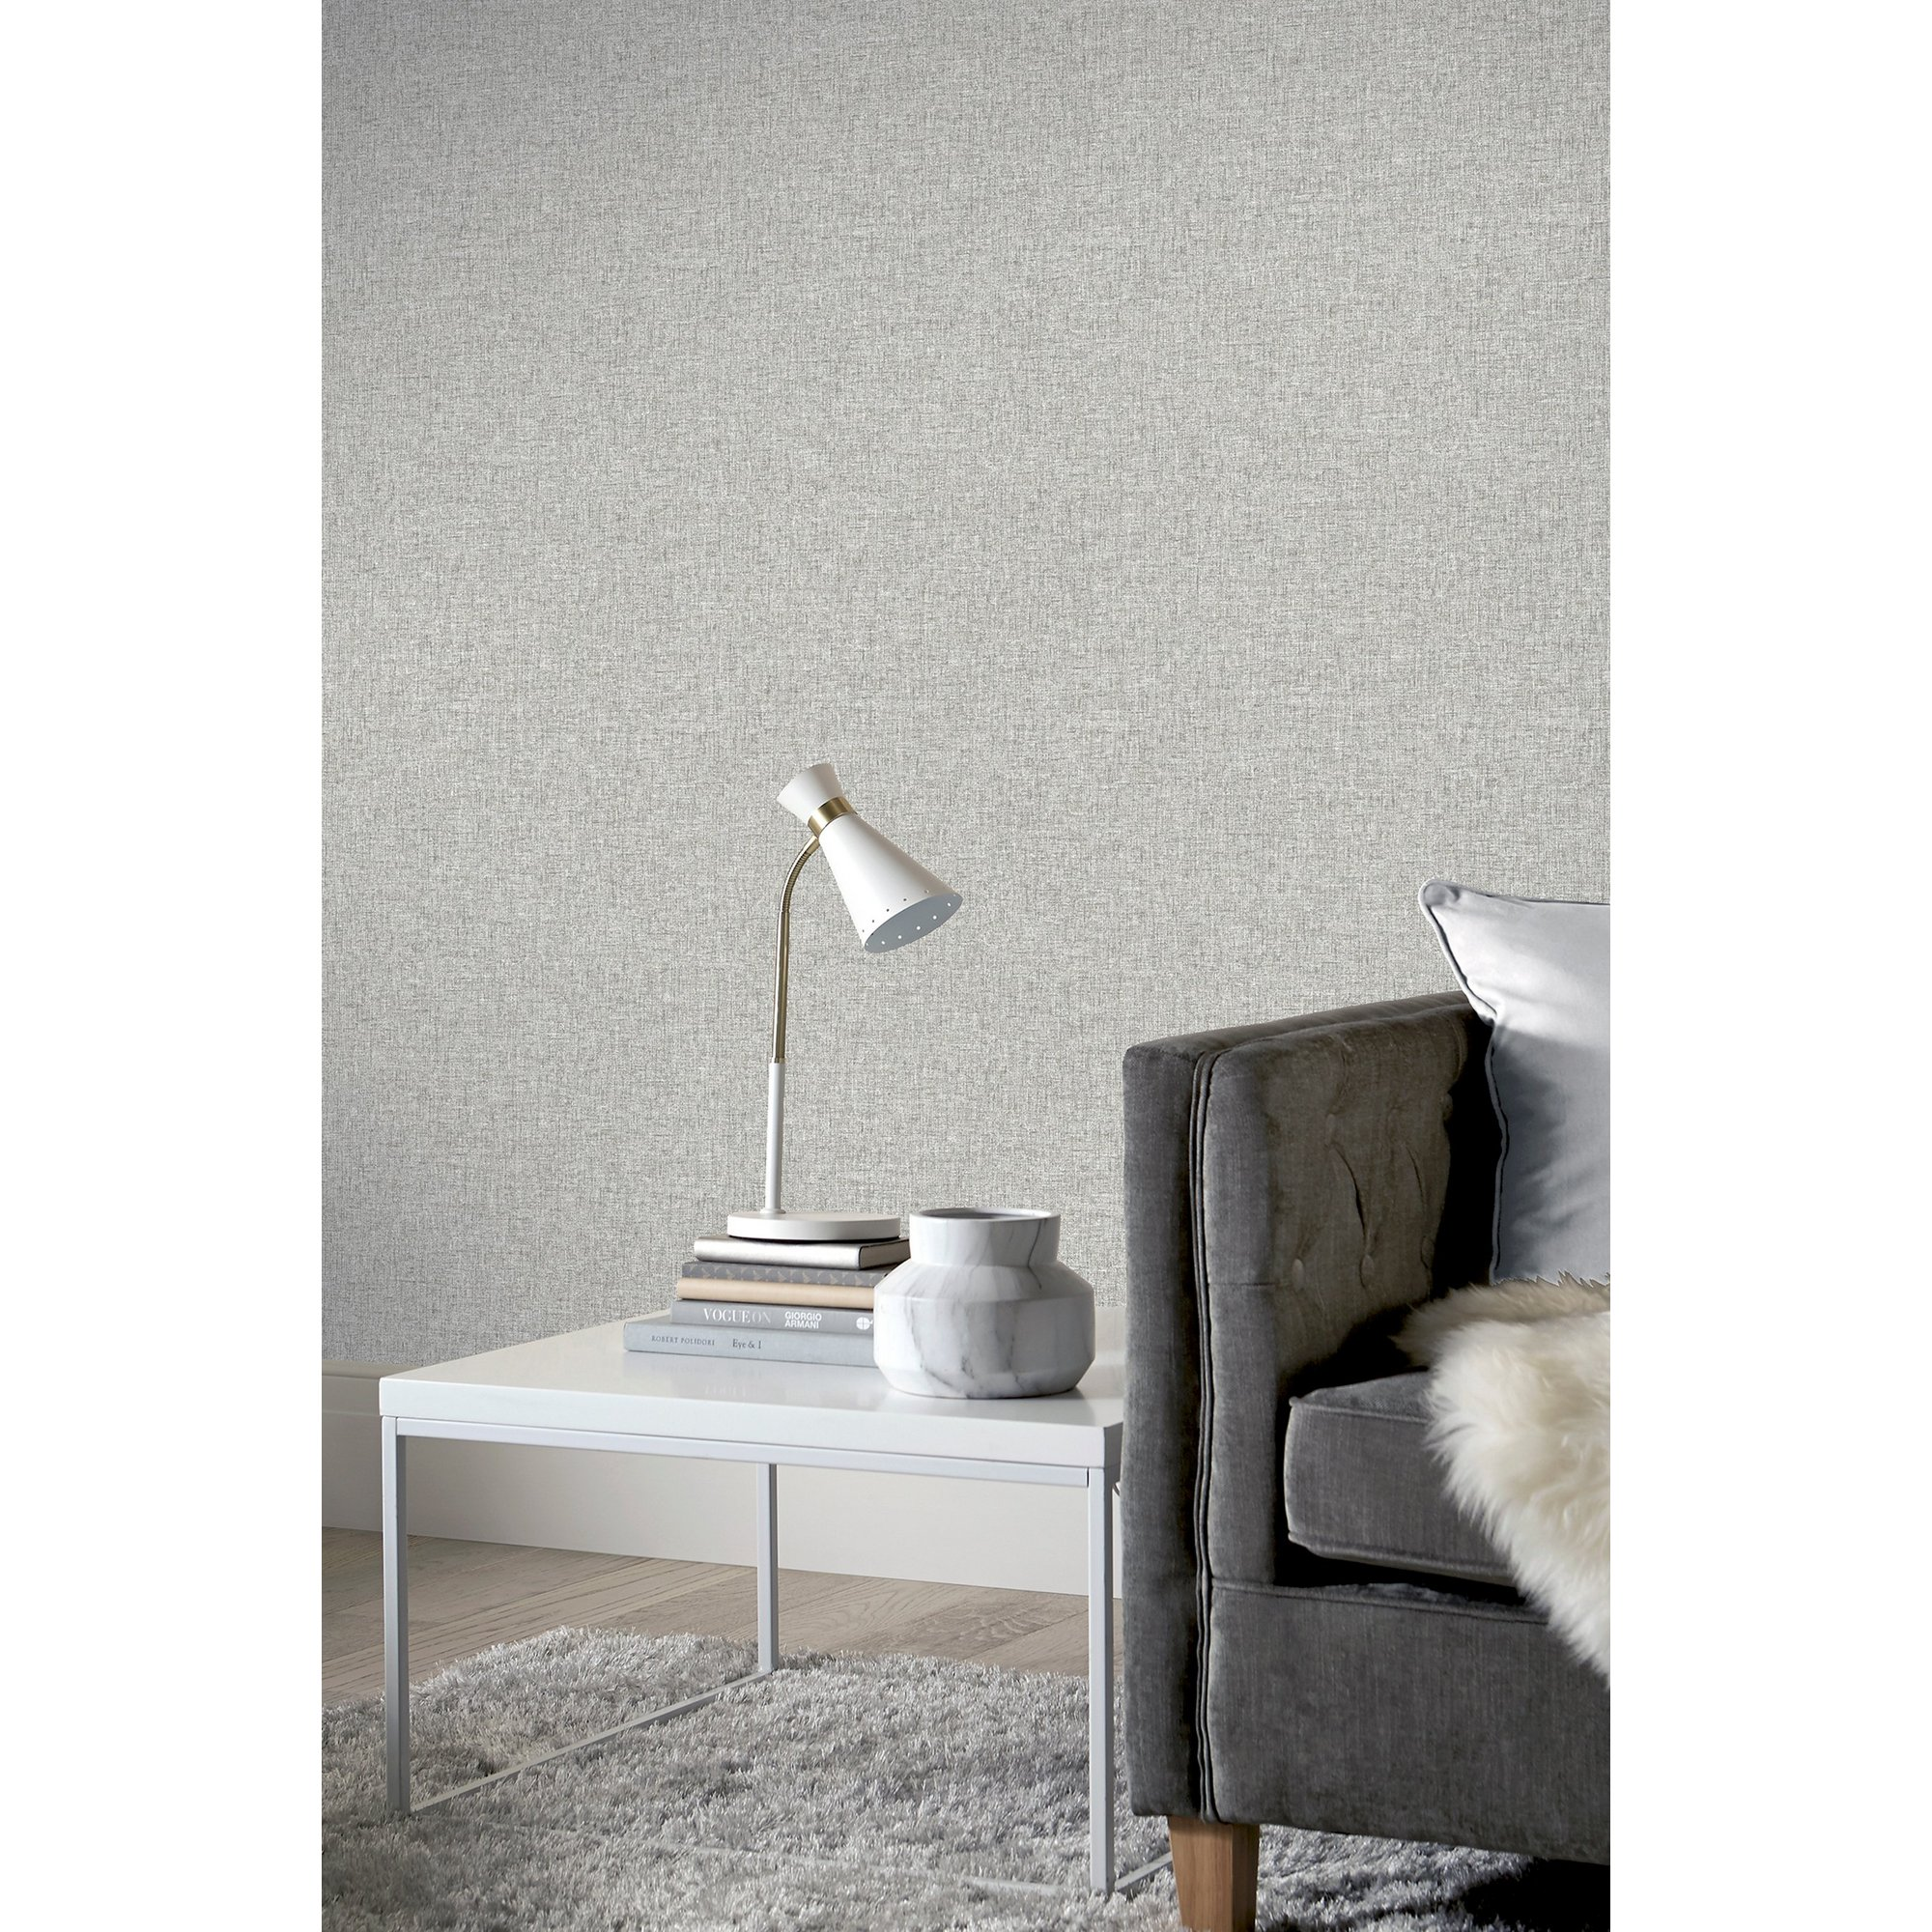 Image of Arthouse Artistick Peel and Stick Wallpaper - Linen Texture